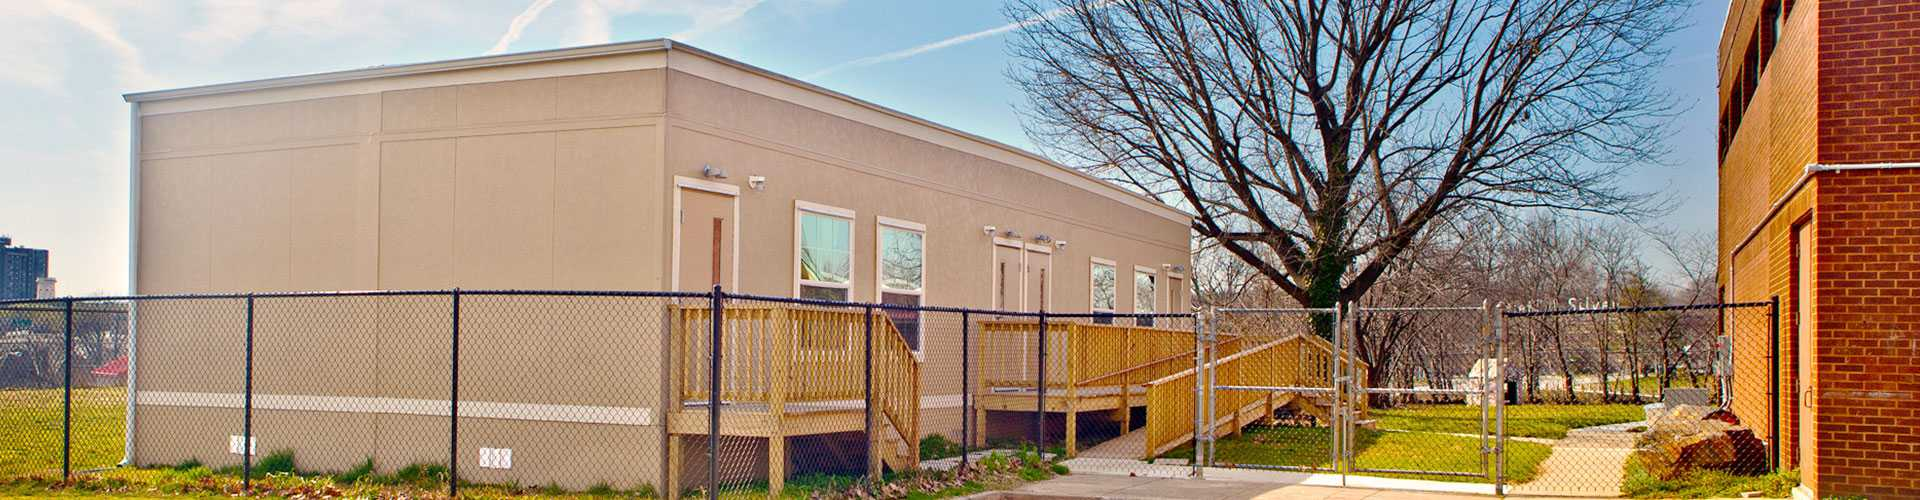 Modular Classroom Buildings For Sale ~ Portable classroom buildings for rent or sale in north